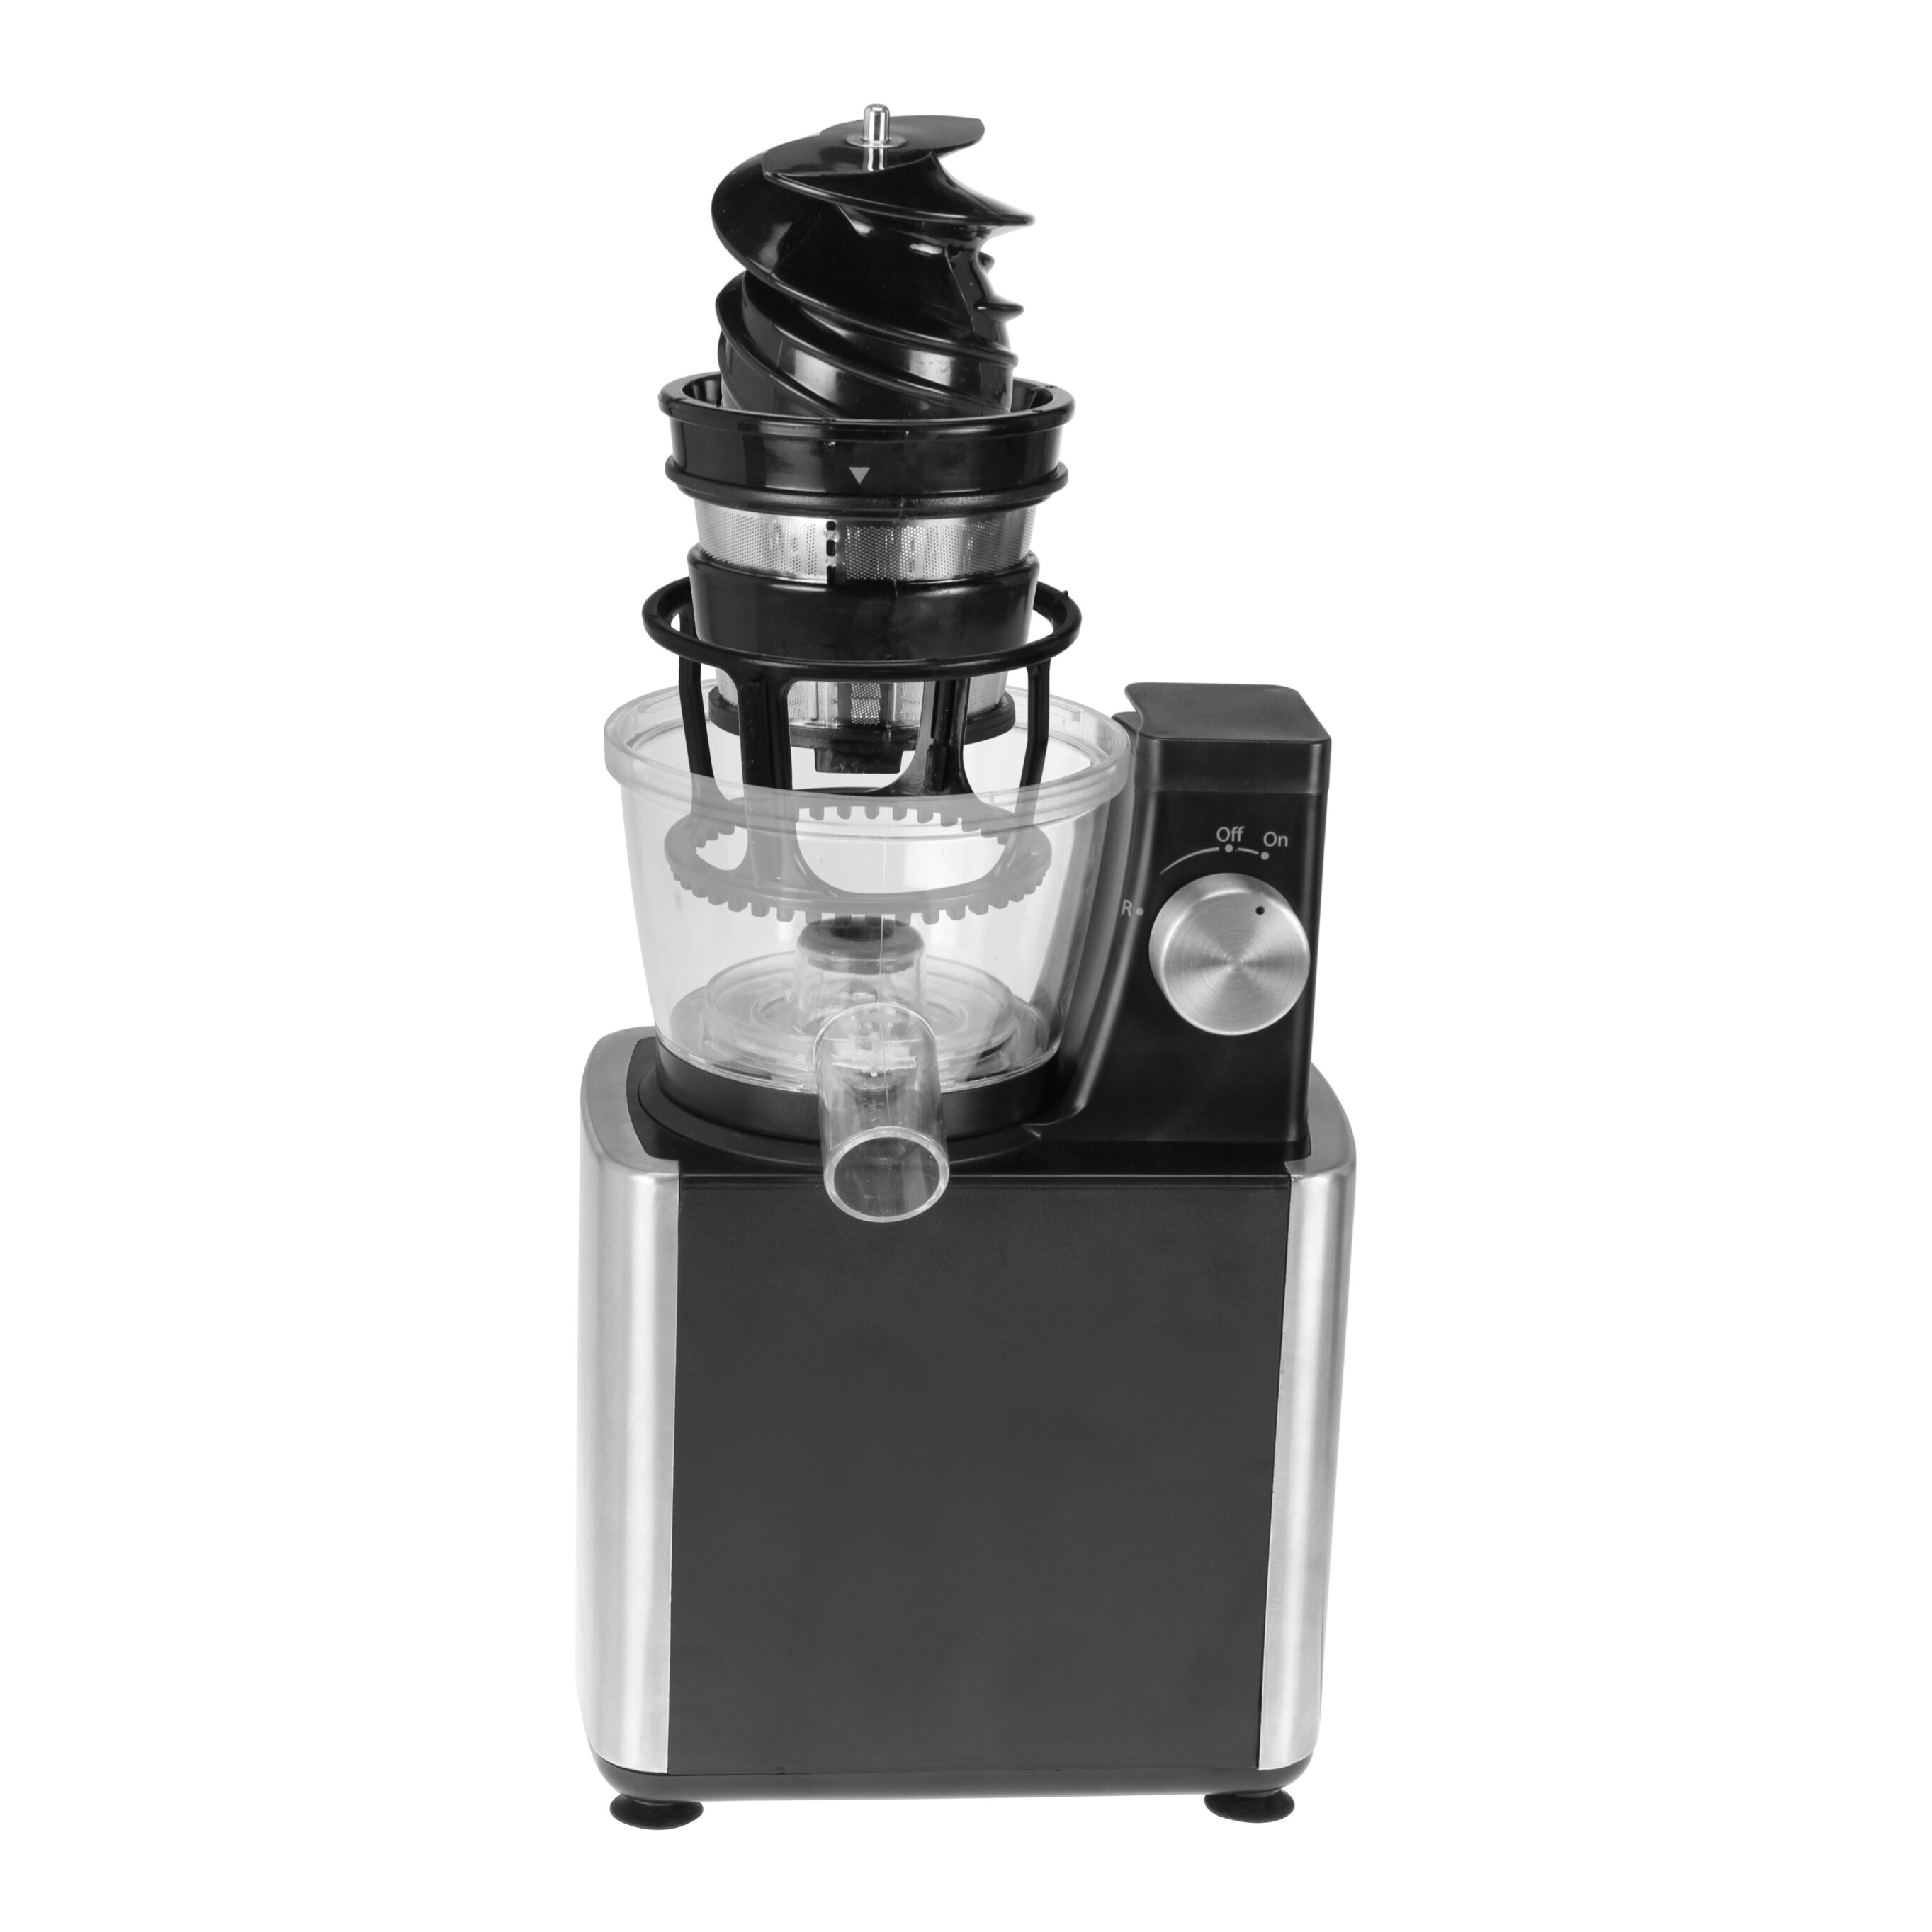 Kalorik Stainless Steel Slow Juicer : Kalorik Slow Juicer & Reviews Wayfair